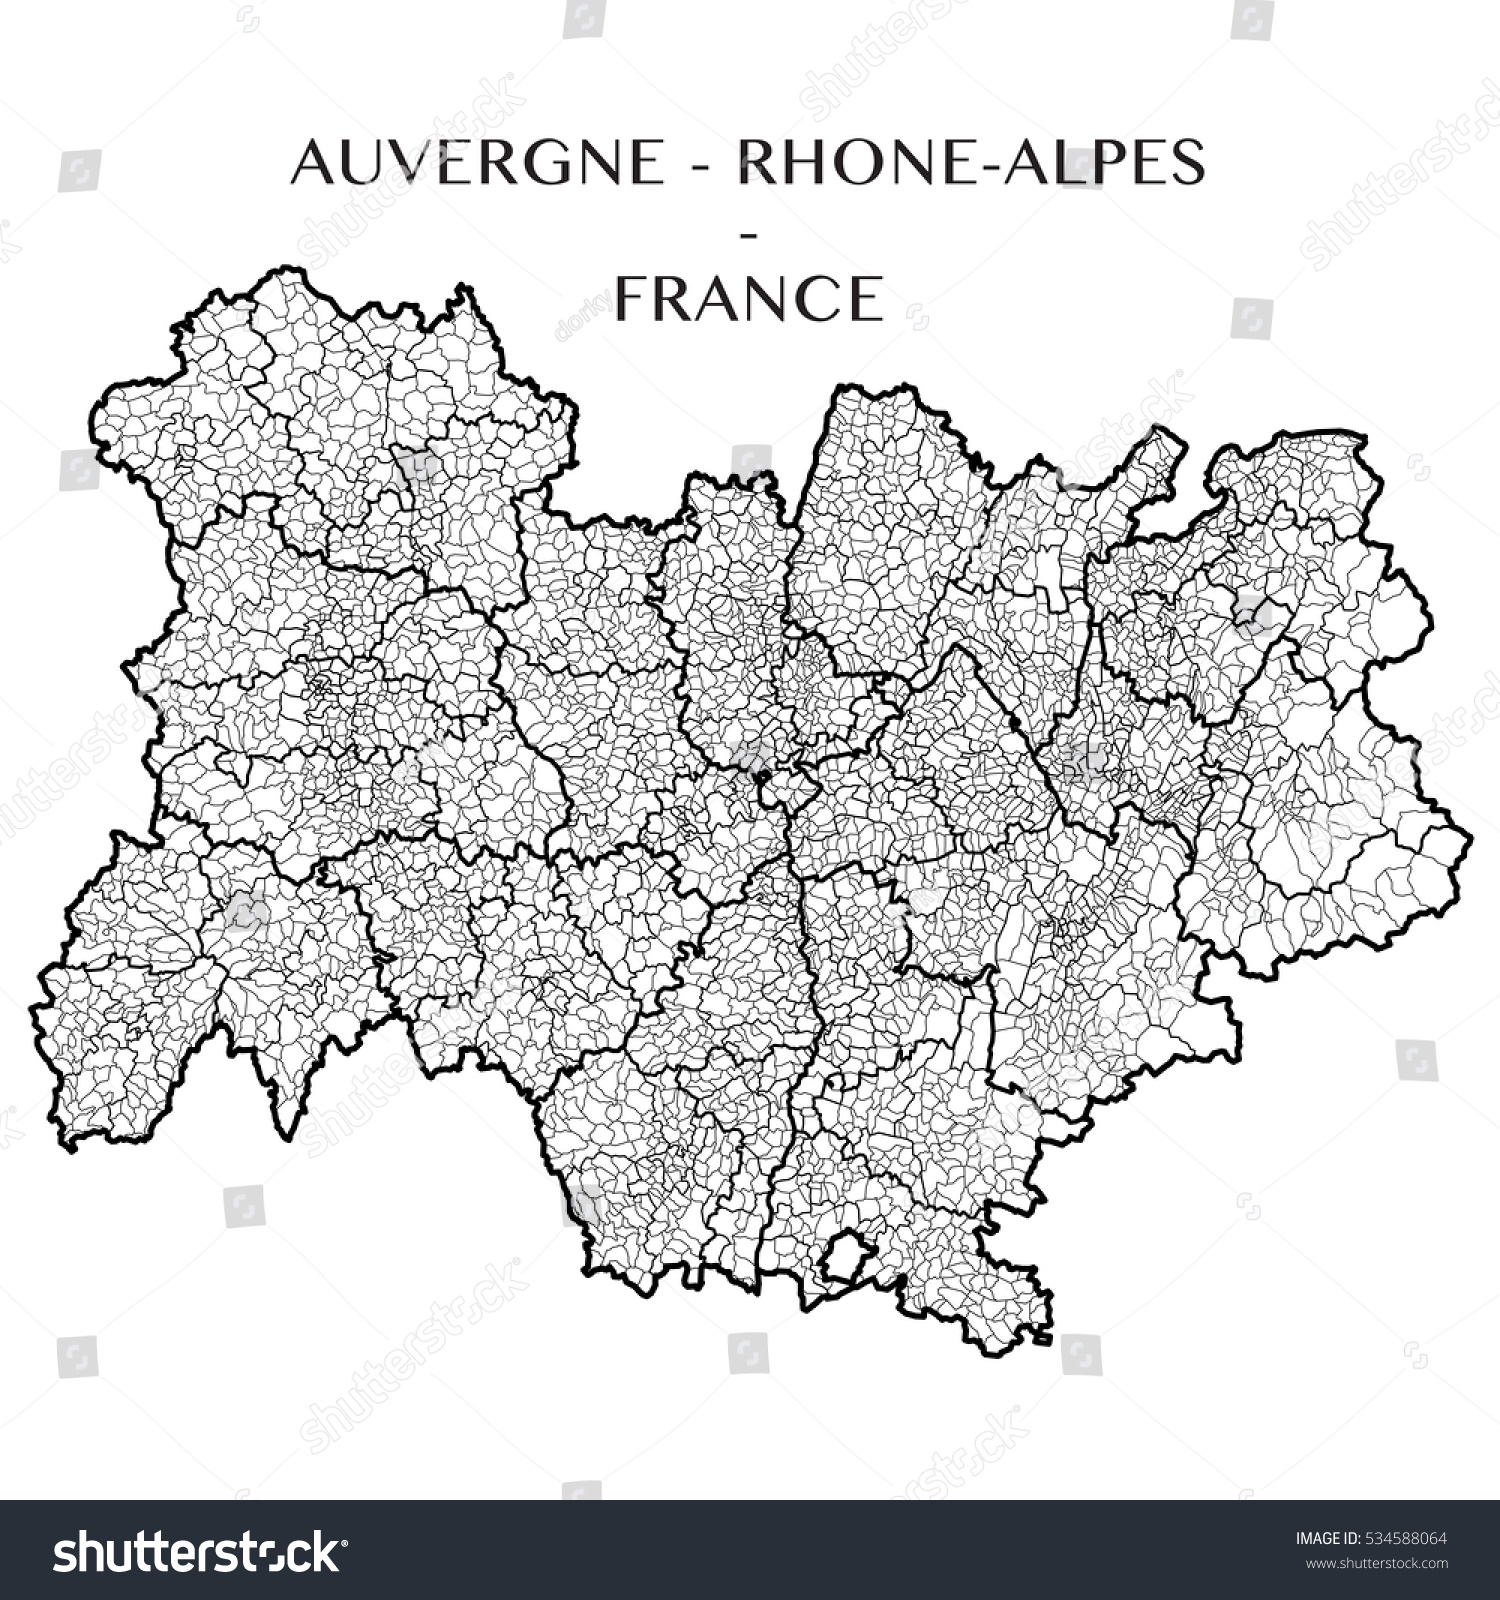 Detailed map region auvergne rhone alpes vectores en stock 534588064 detailed map region auvergne rhone alpes vectores en stock 534588064 shutterstock gumiabroncs Image collections